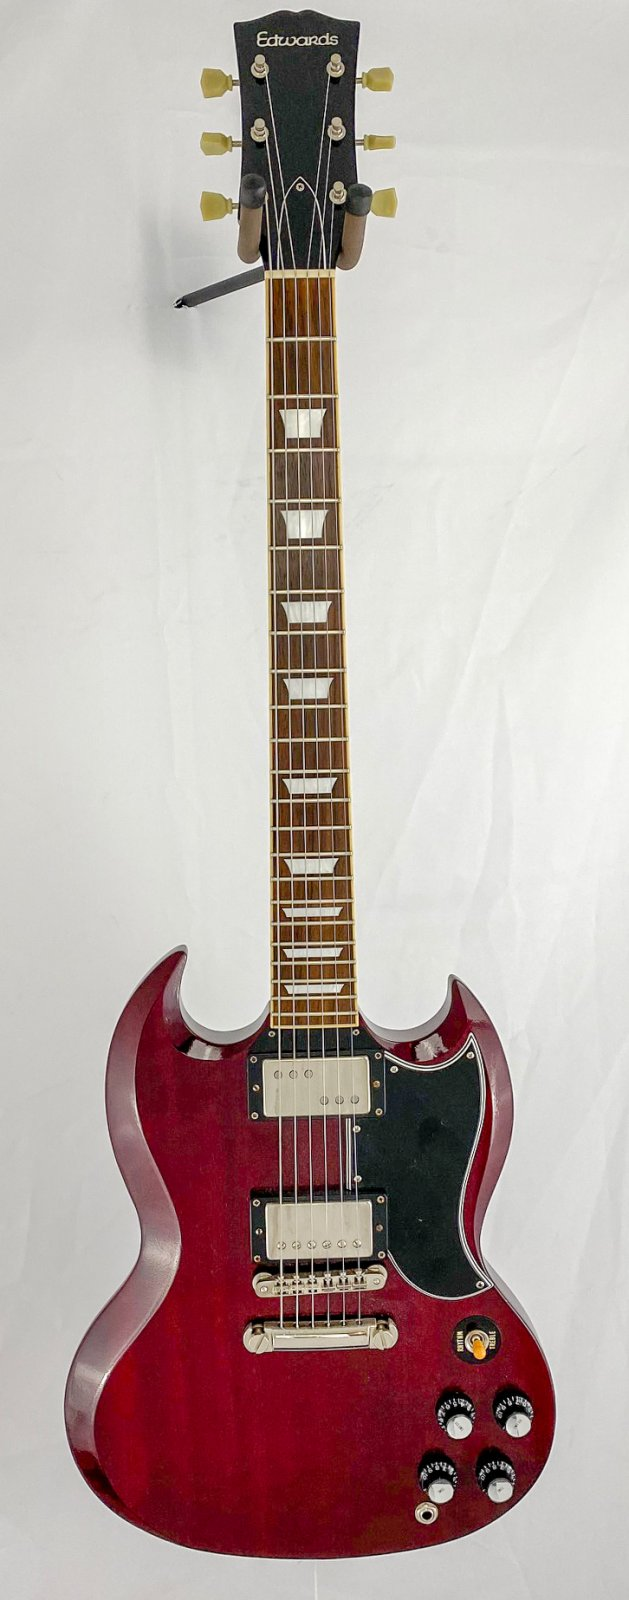 Edwards E-SG-90 LT2 Heritage Cherry w/ Upgrades